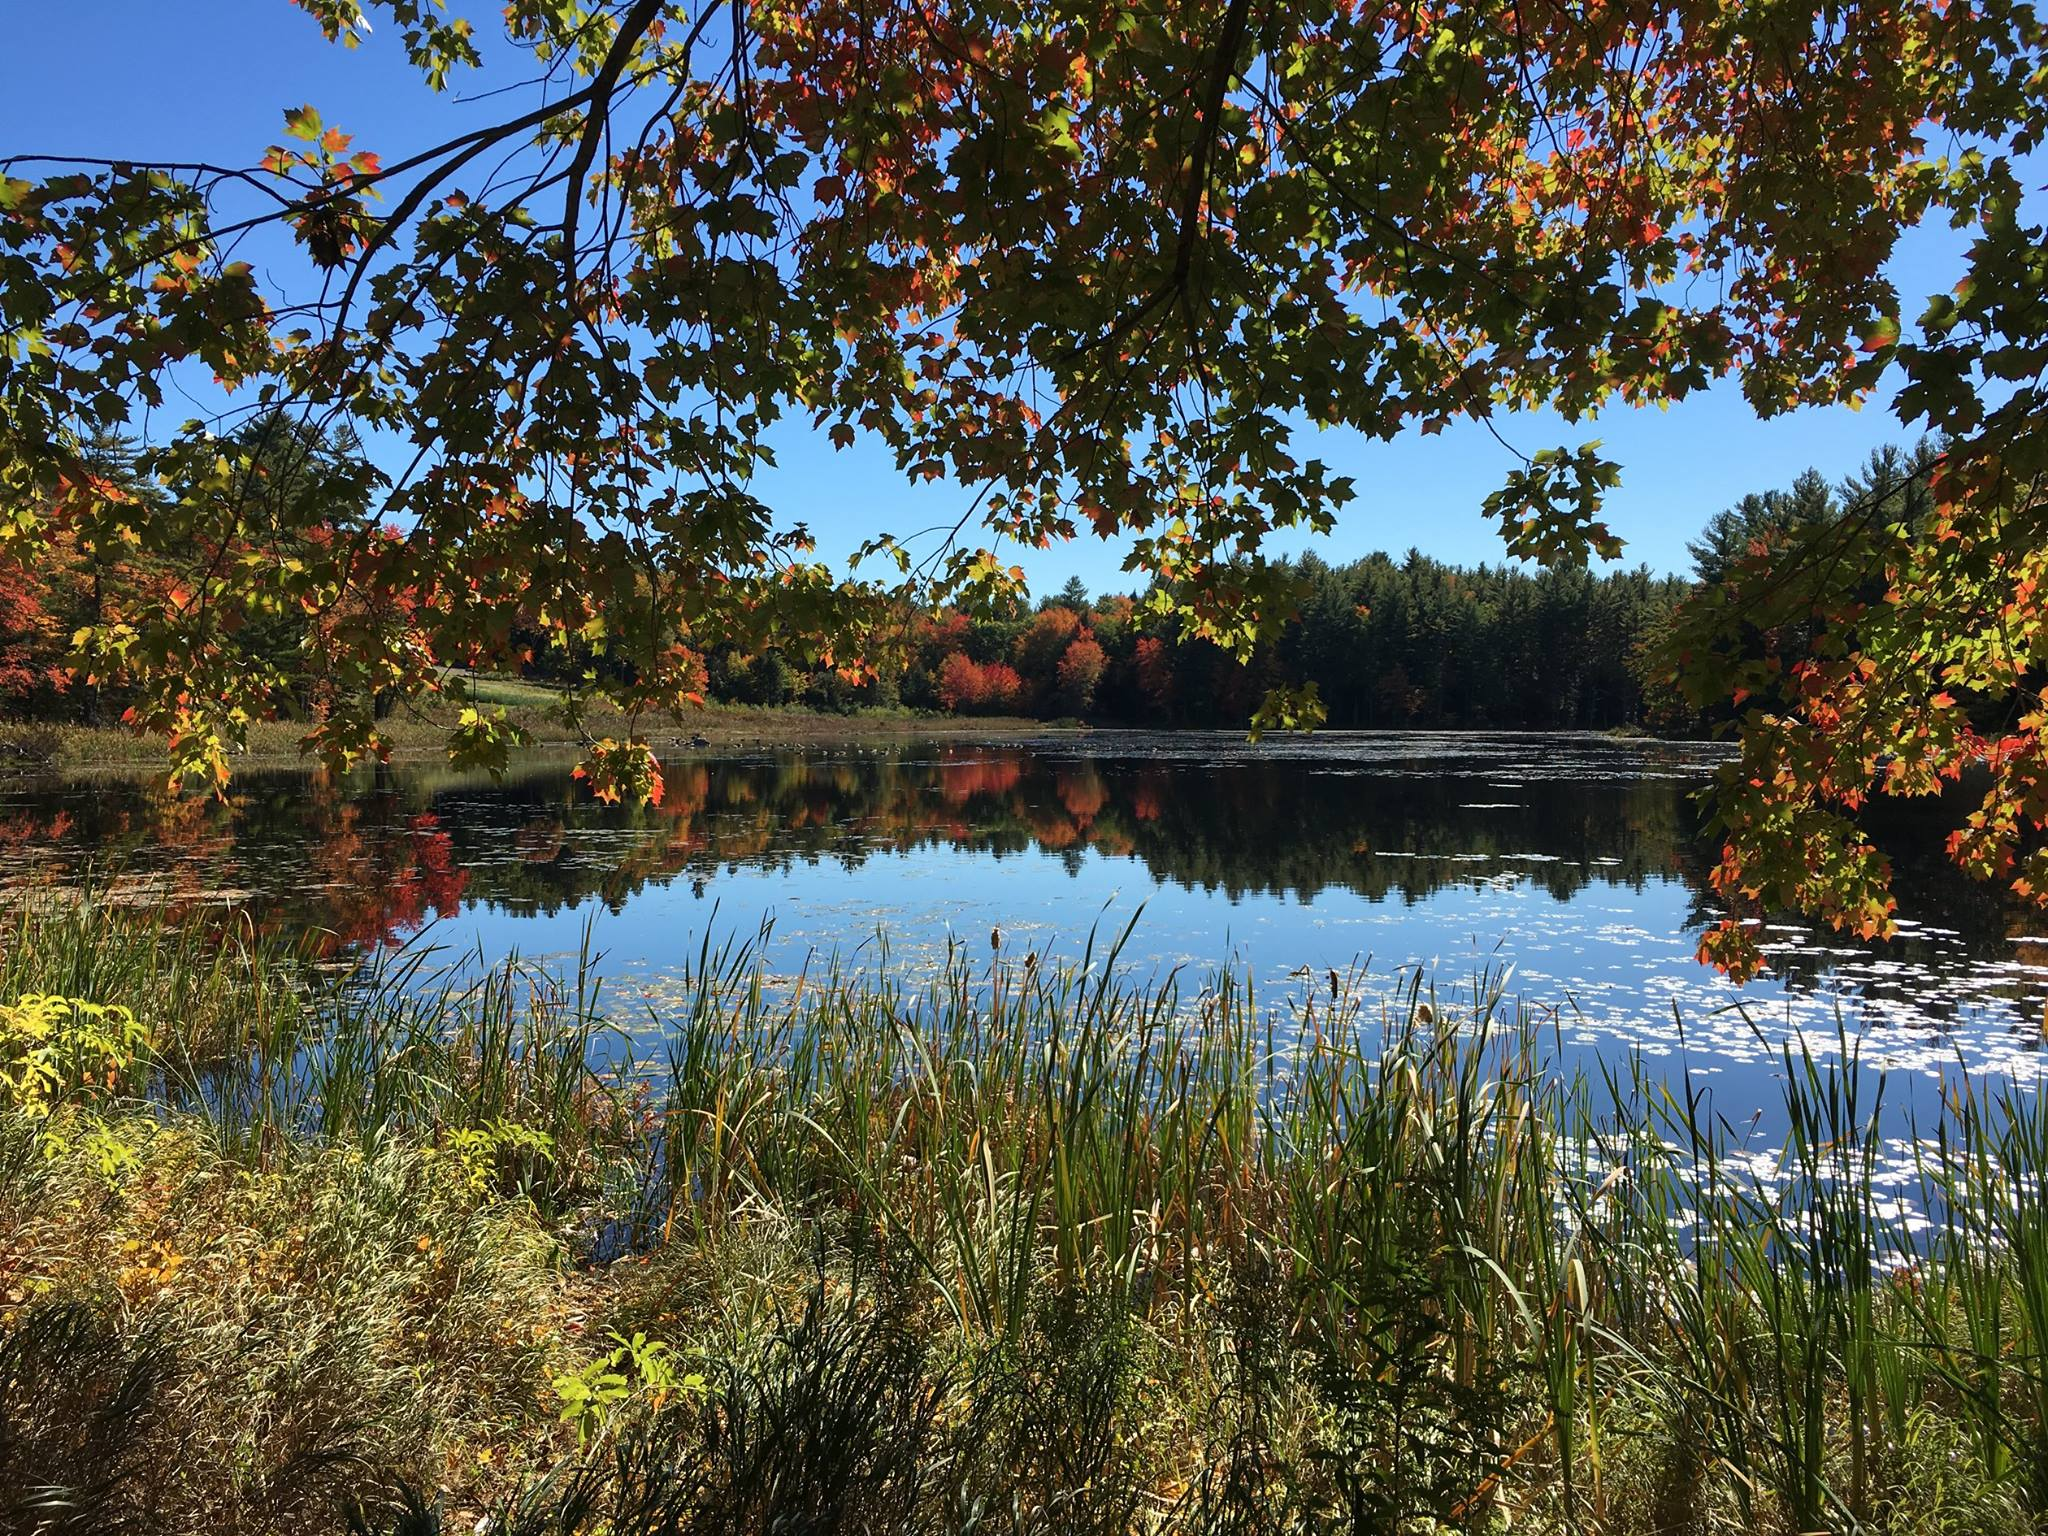 Pond, surrounded by marshy grasses.  In the background, trees in fall bloom, showing orange and red leaves.